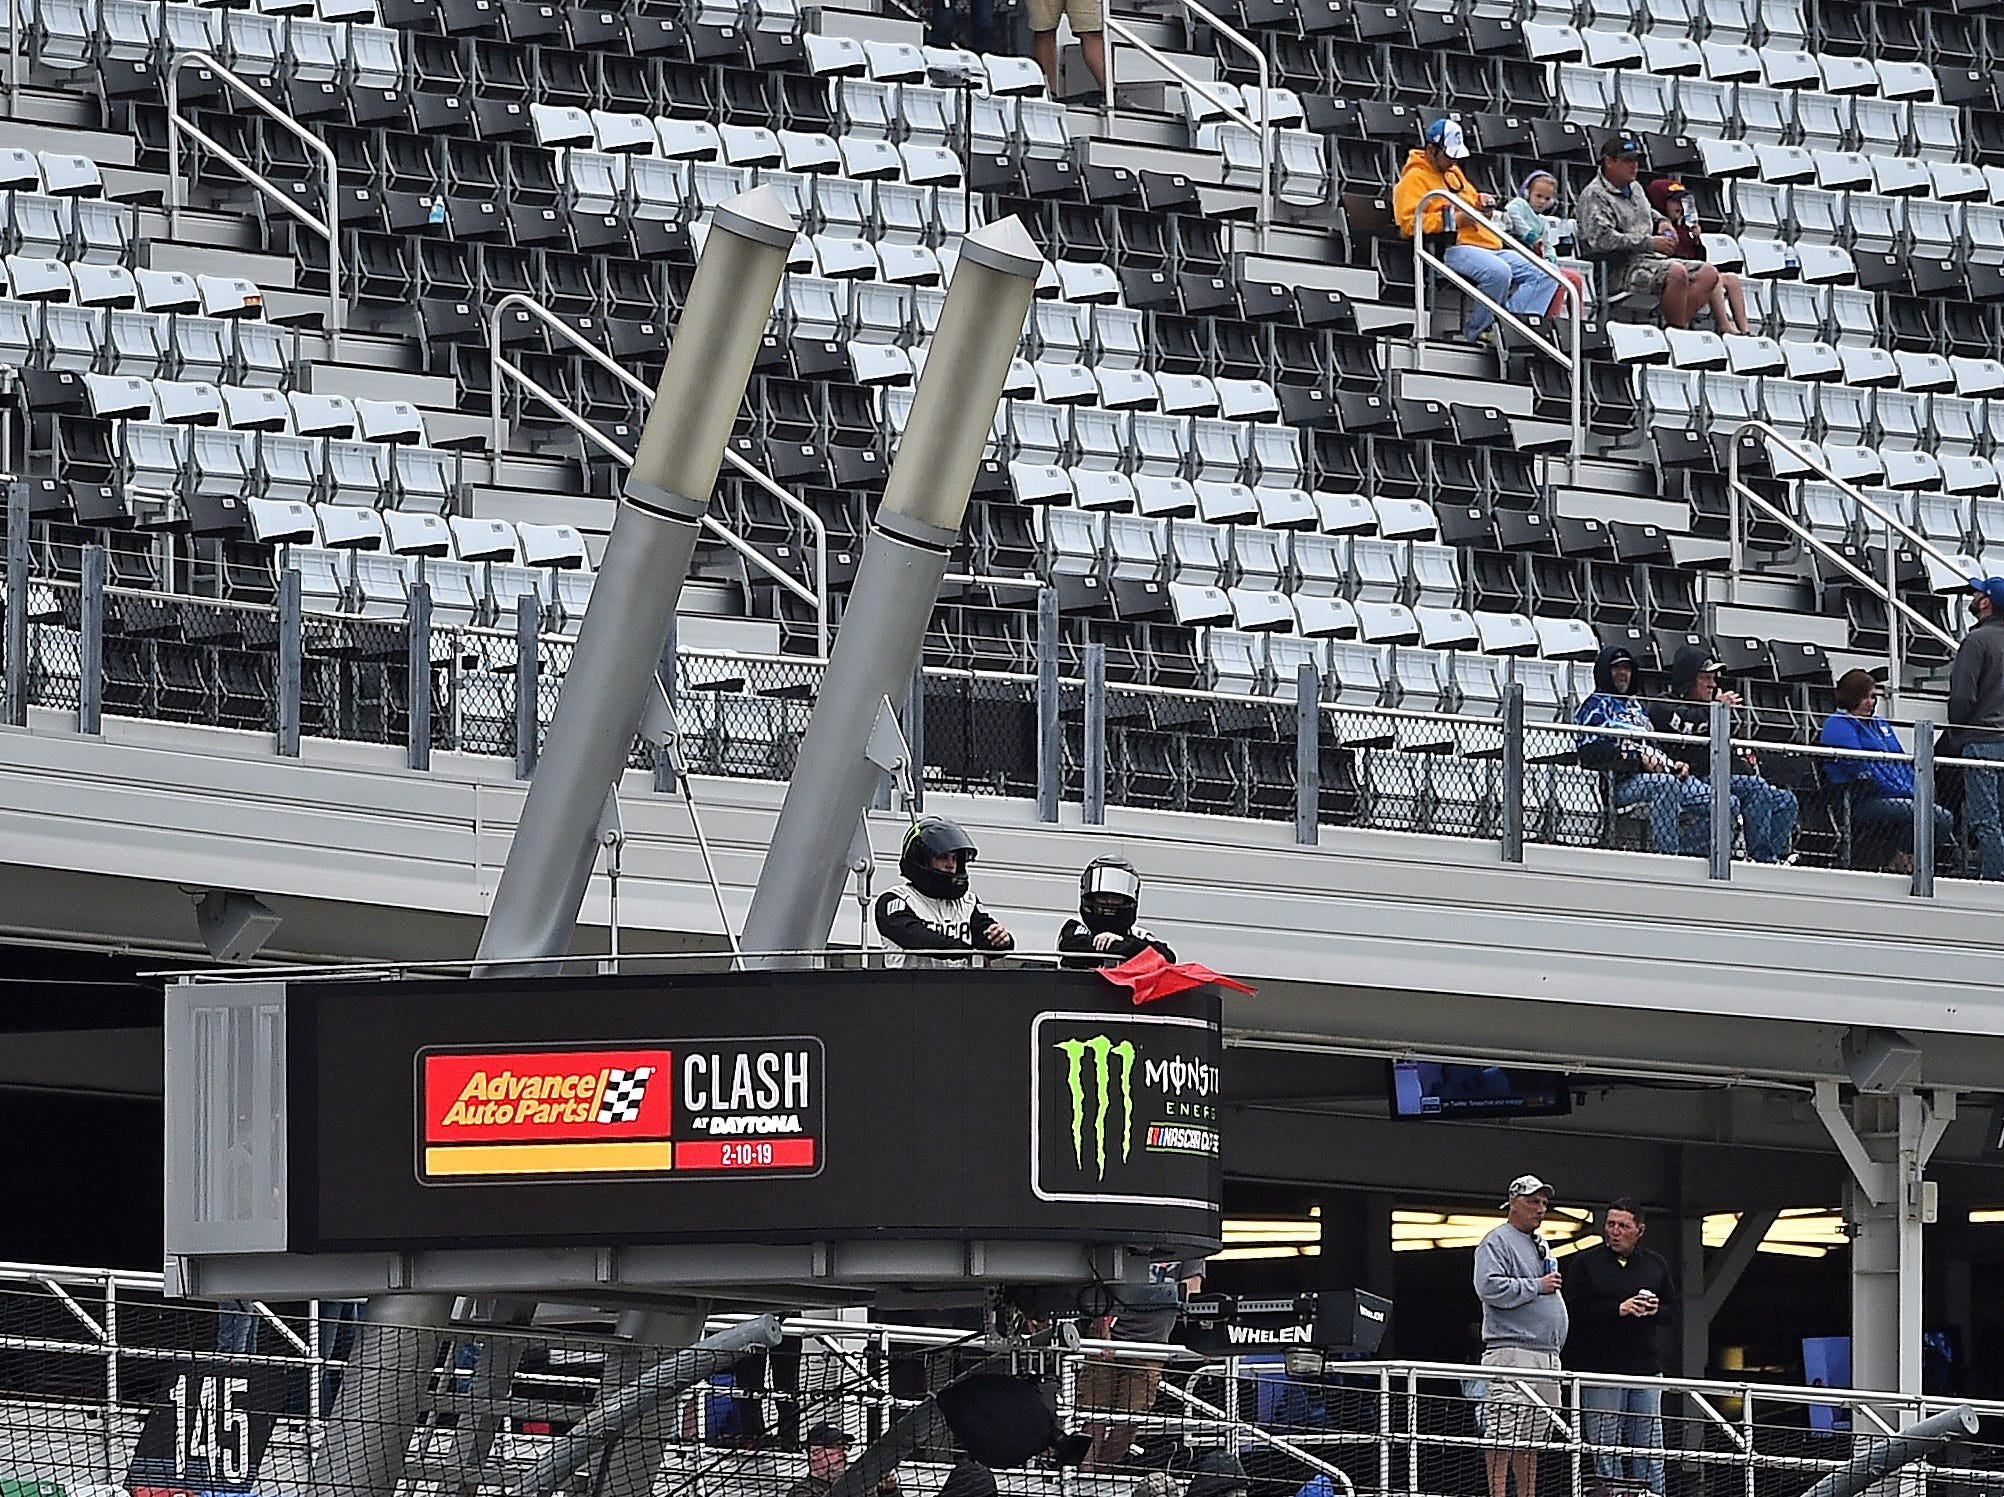 Feb 10: A NASCAR official displays the red flag for rain during the Advance Auto Parts Clash at Daytona International Speedway. The race was called for rain after Jimmie Johnson took the lead following a multi-car wreck.